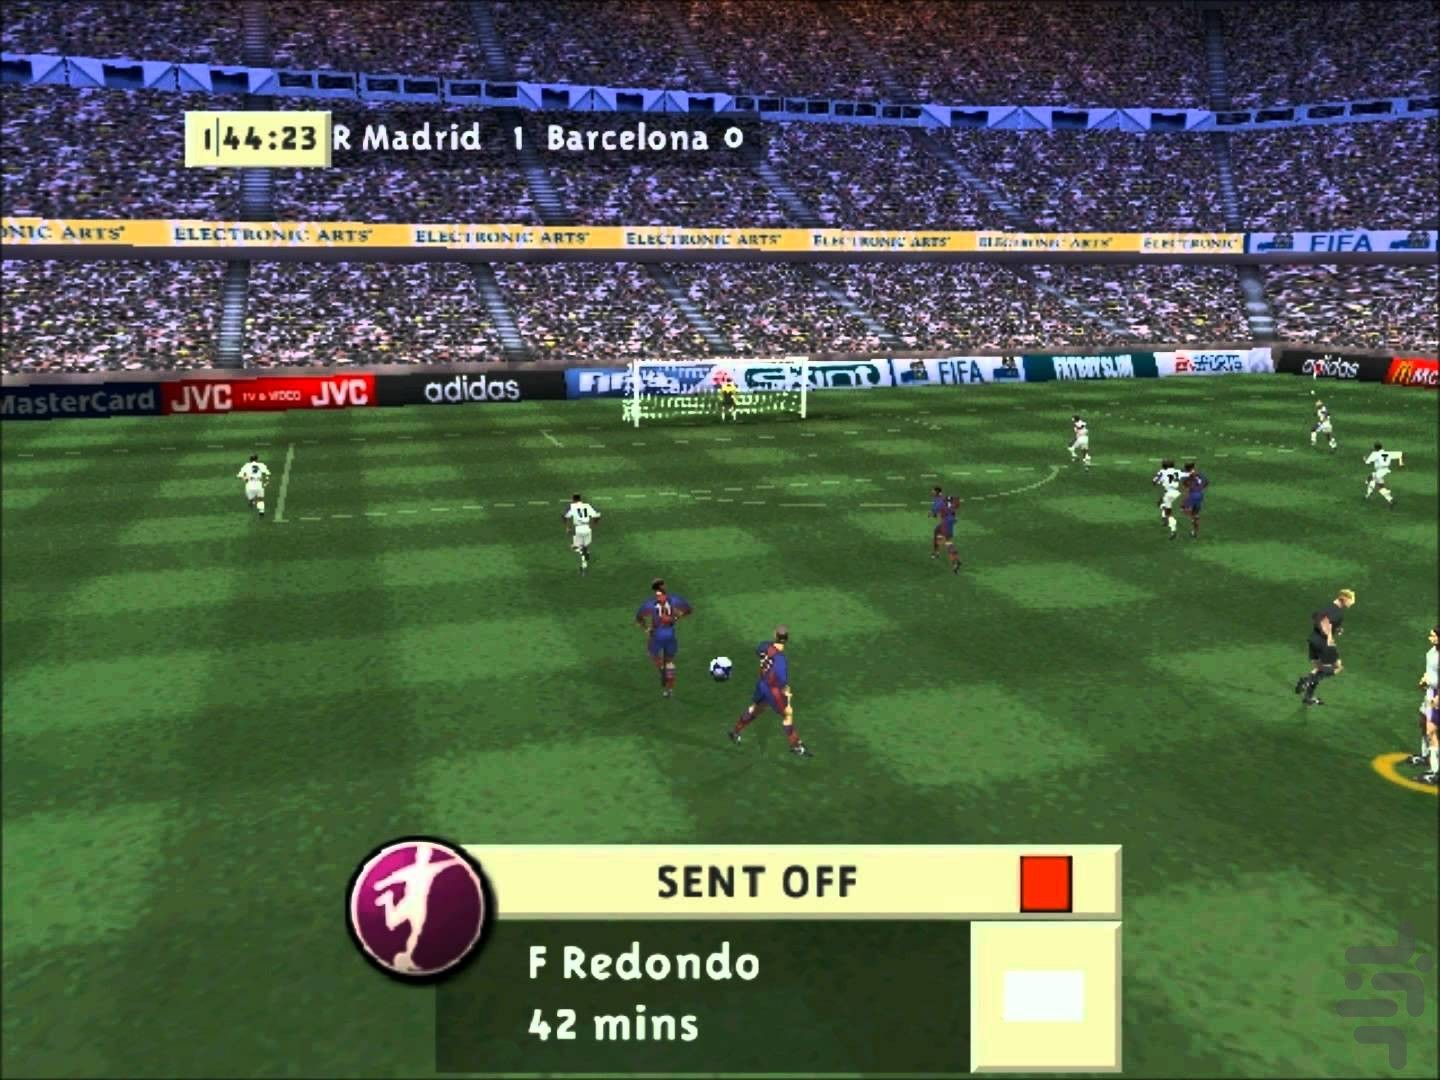 FIFA 99 FIFA Games Evolution From 94 2020